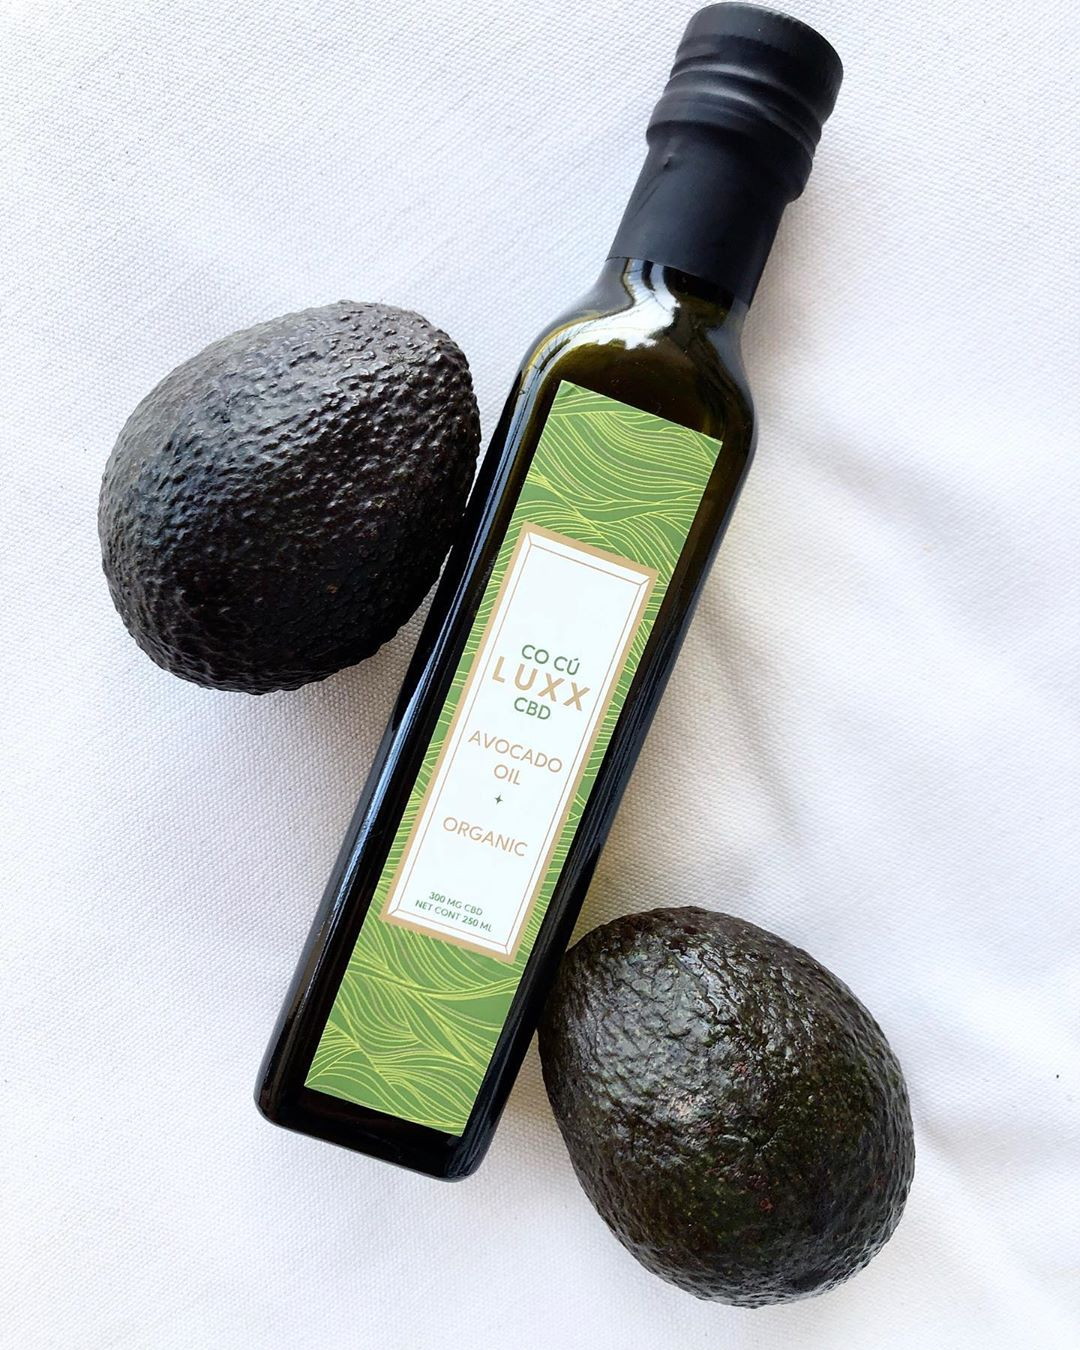 CoCu Luxx Avocado Oil